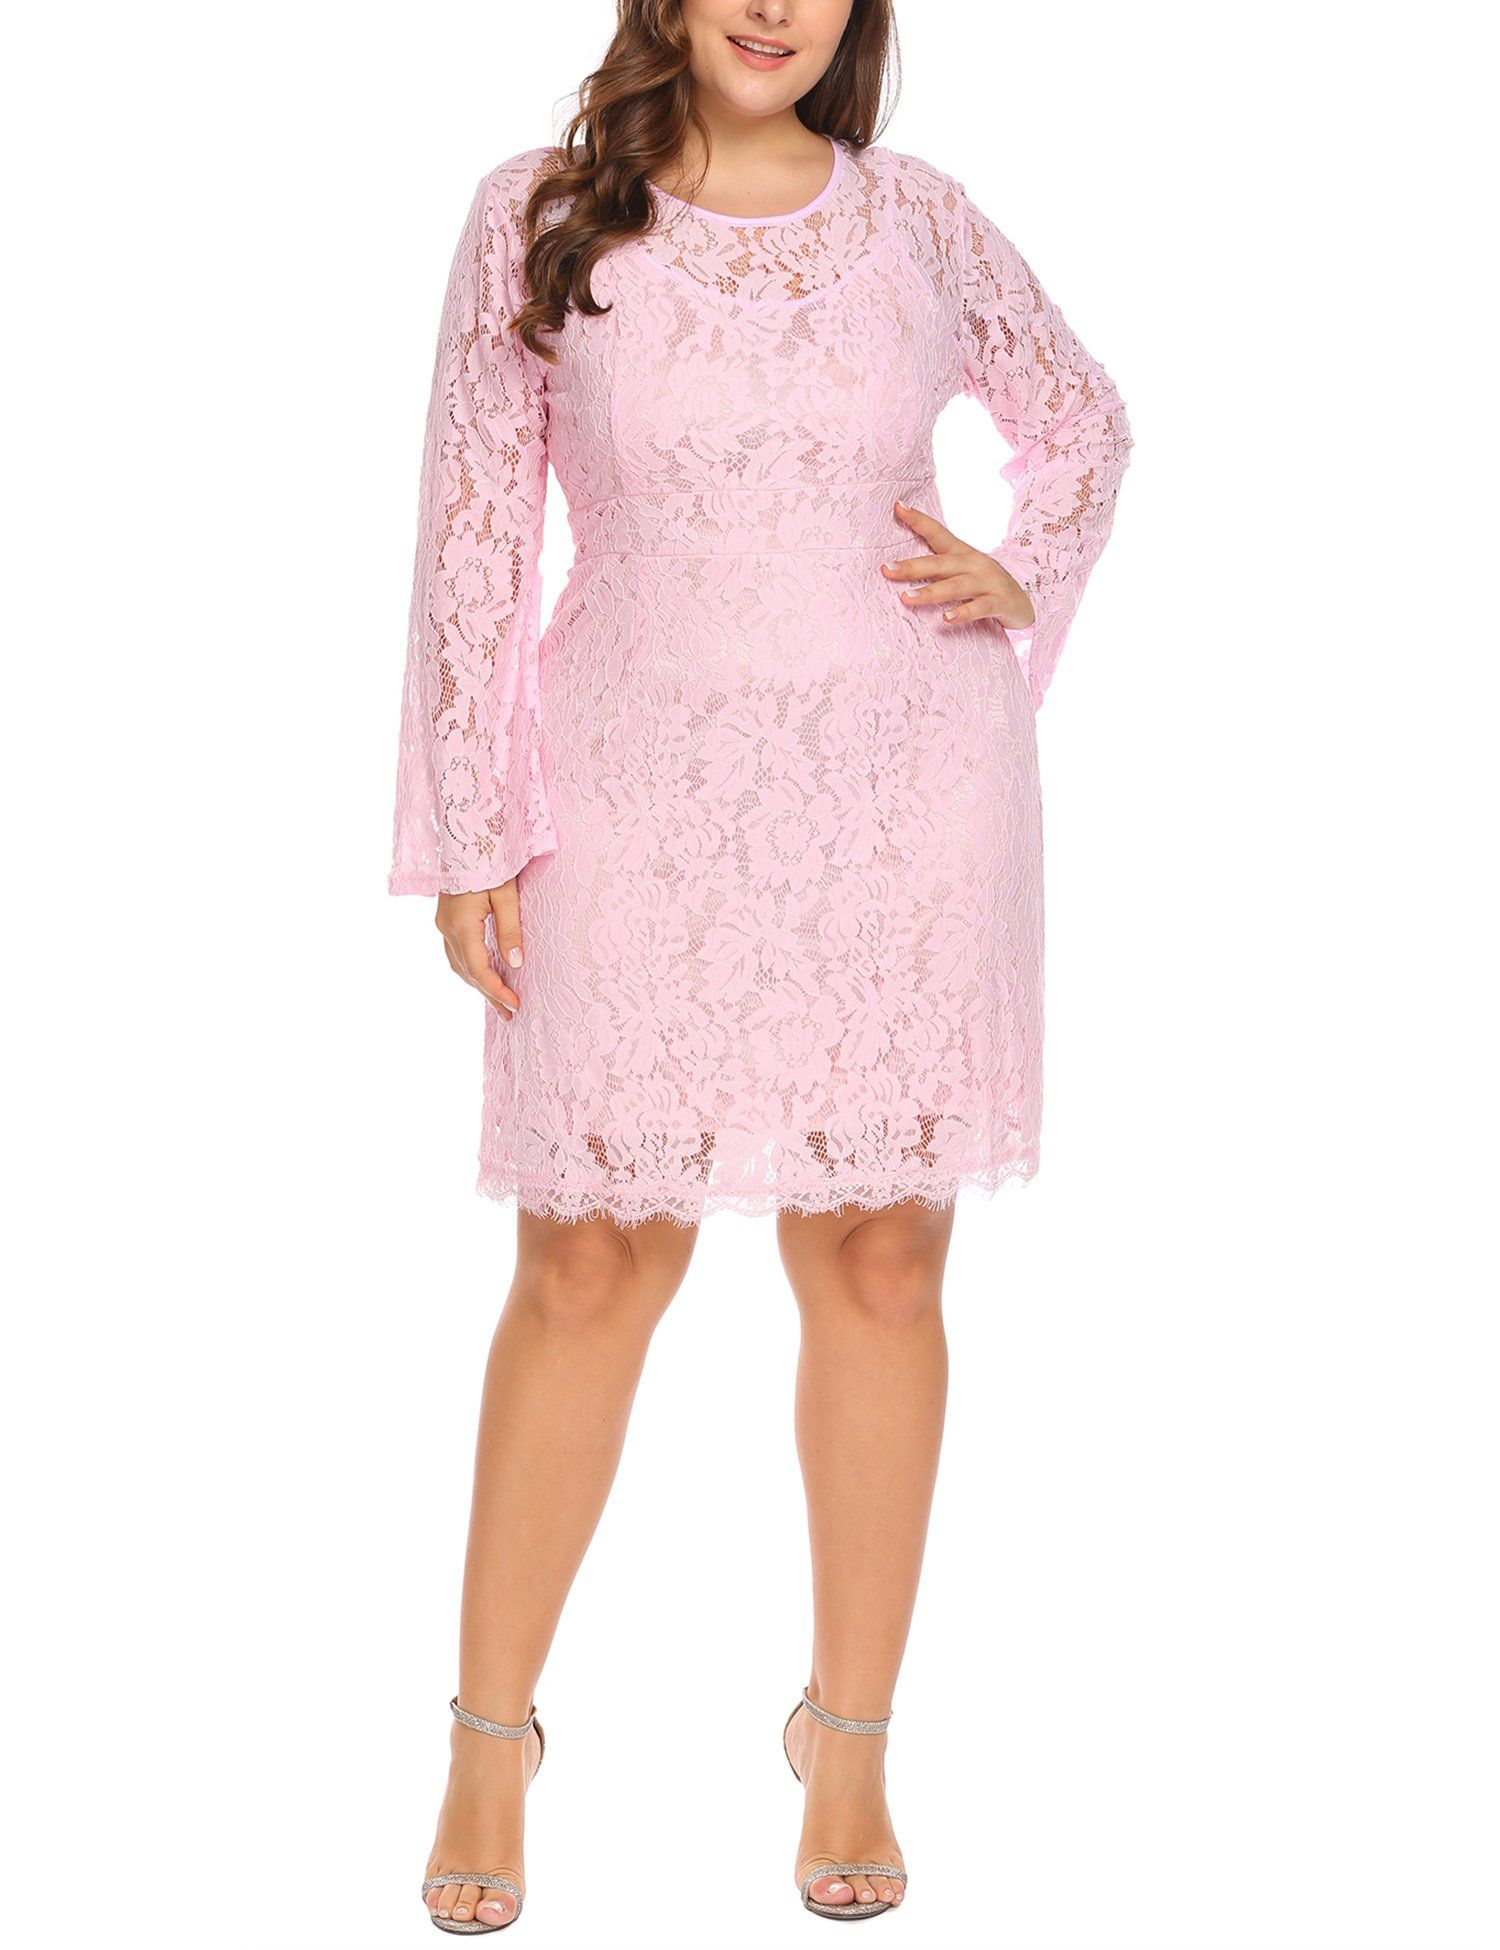 c9bb7e615dc Maternity Styles - skinny maternity dresses   Vpicuo Womens Plus Size  Elegant Flare Long Sleeve Lace Bodycon Cocktail Party Dresses     Read more  ...